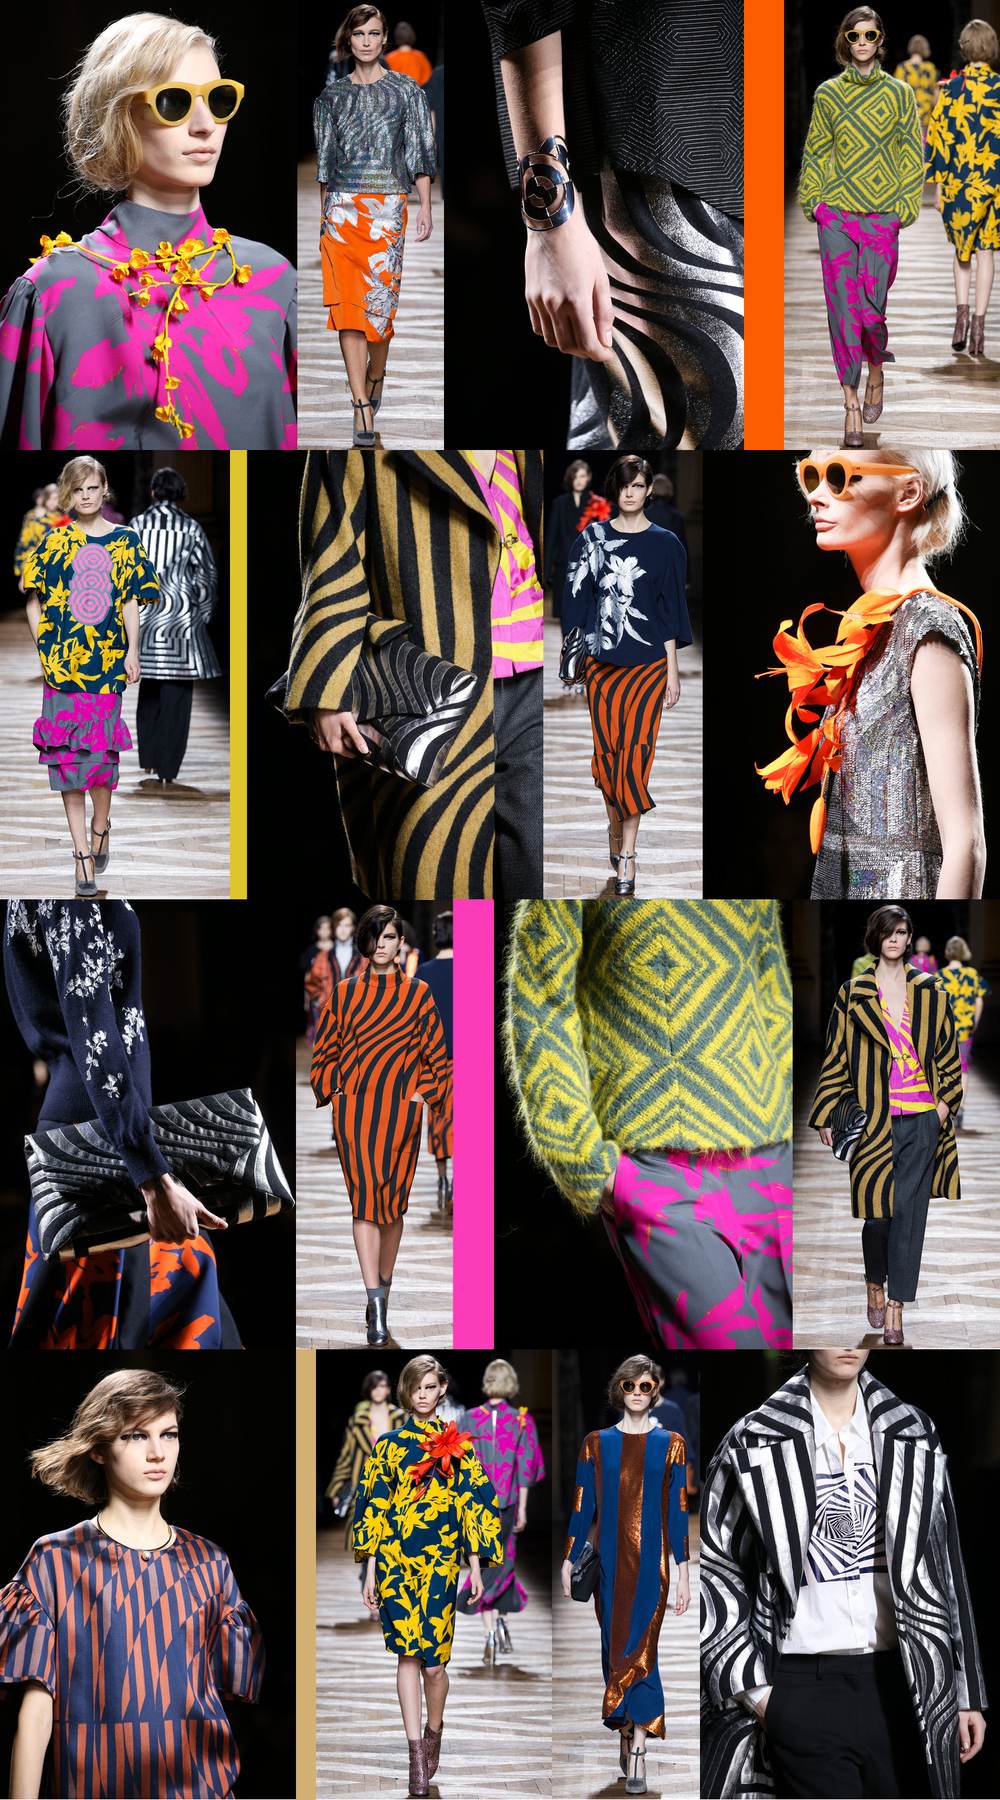 Liz Nehdi's favourite looks from Dries Van Noten's A/W 2014 collection